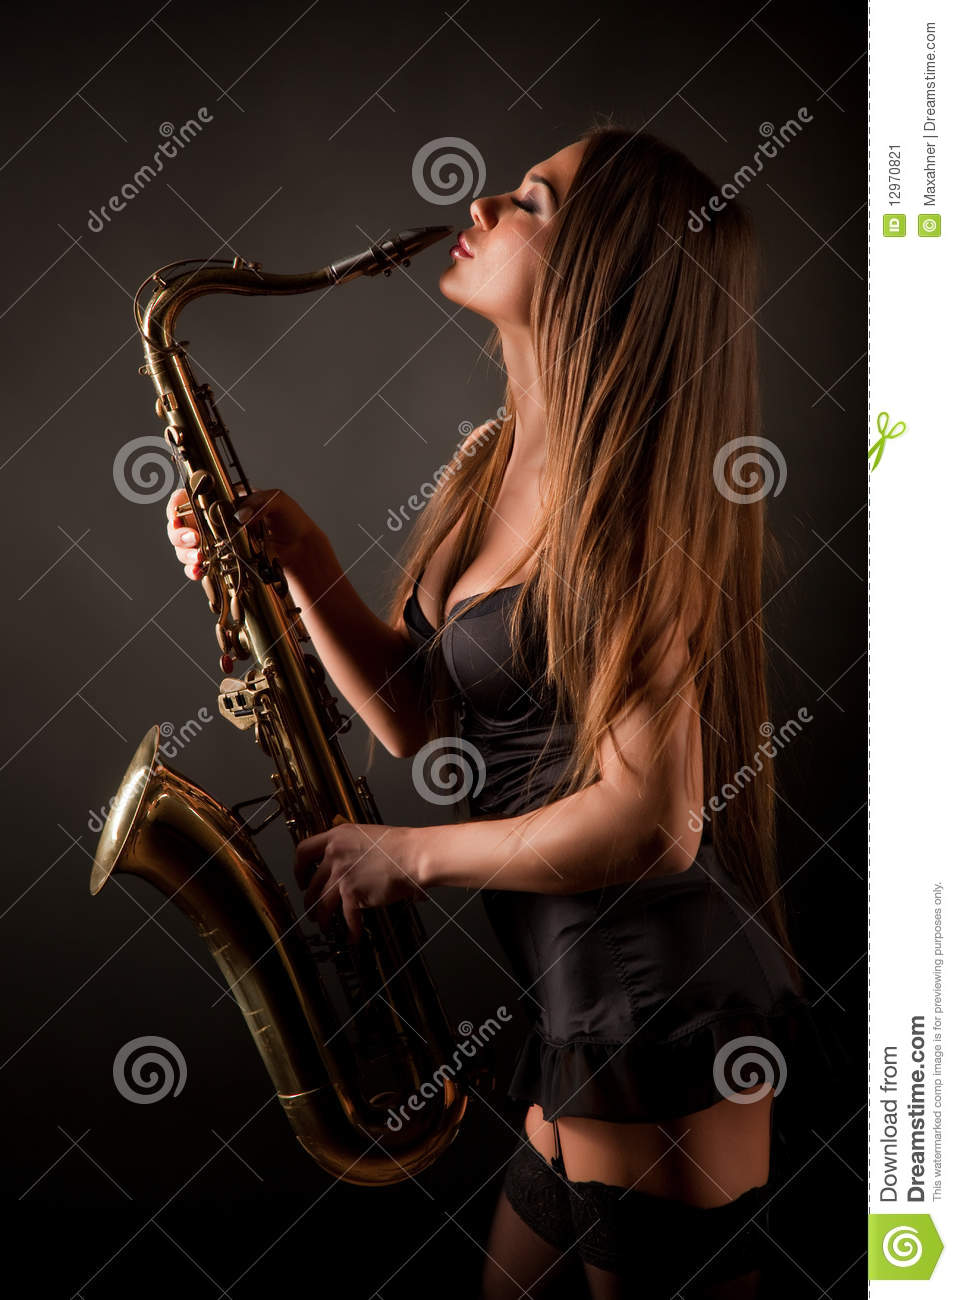 girl first time sax pic